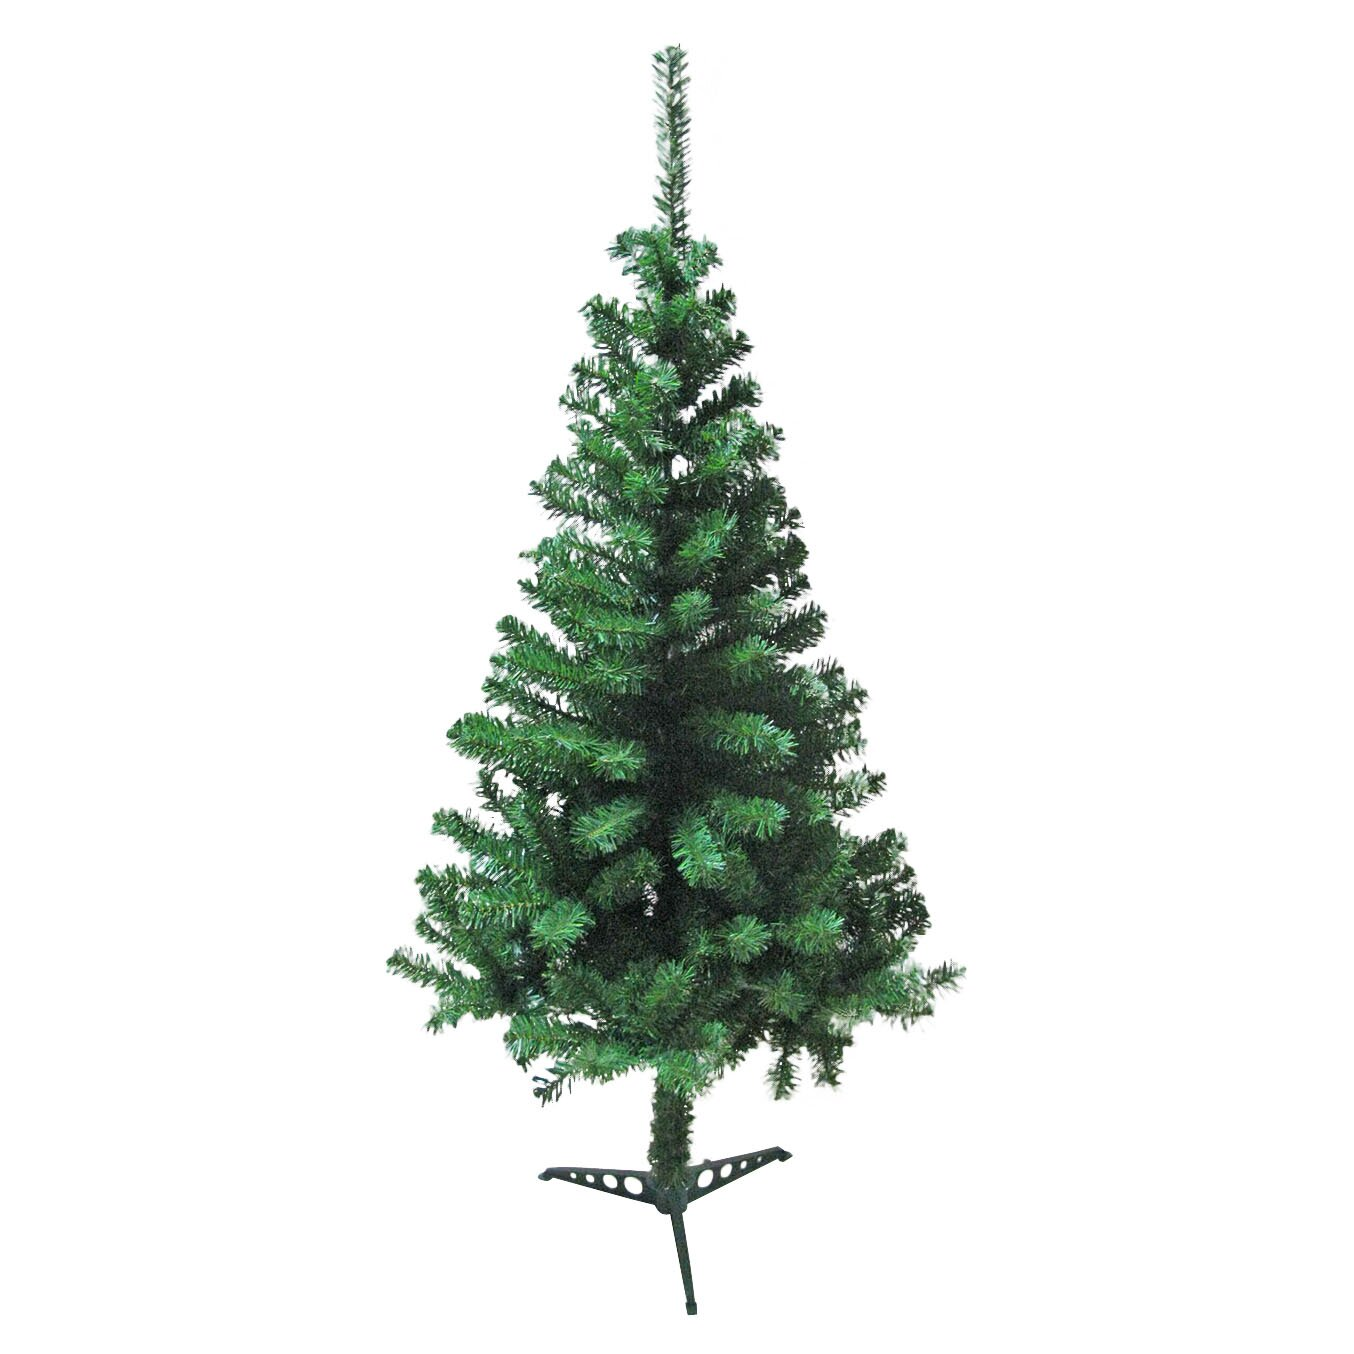 Most Realistic Artificial Christmas Tree Reviews: TrailWorthy 4' Green Artificial Christmas Tree & Reviews